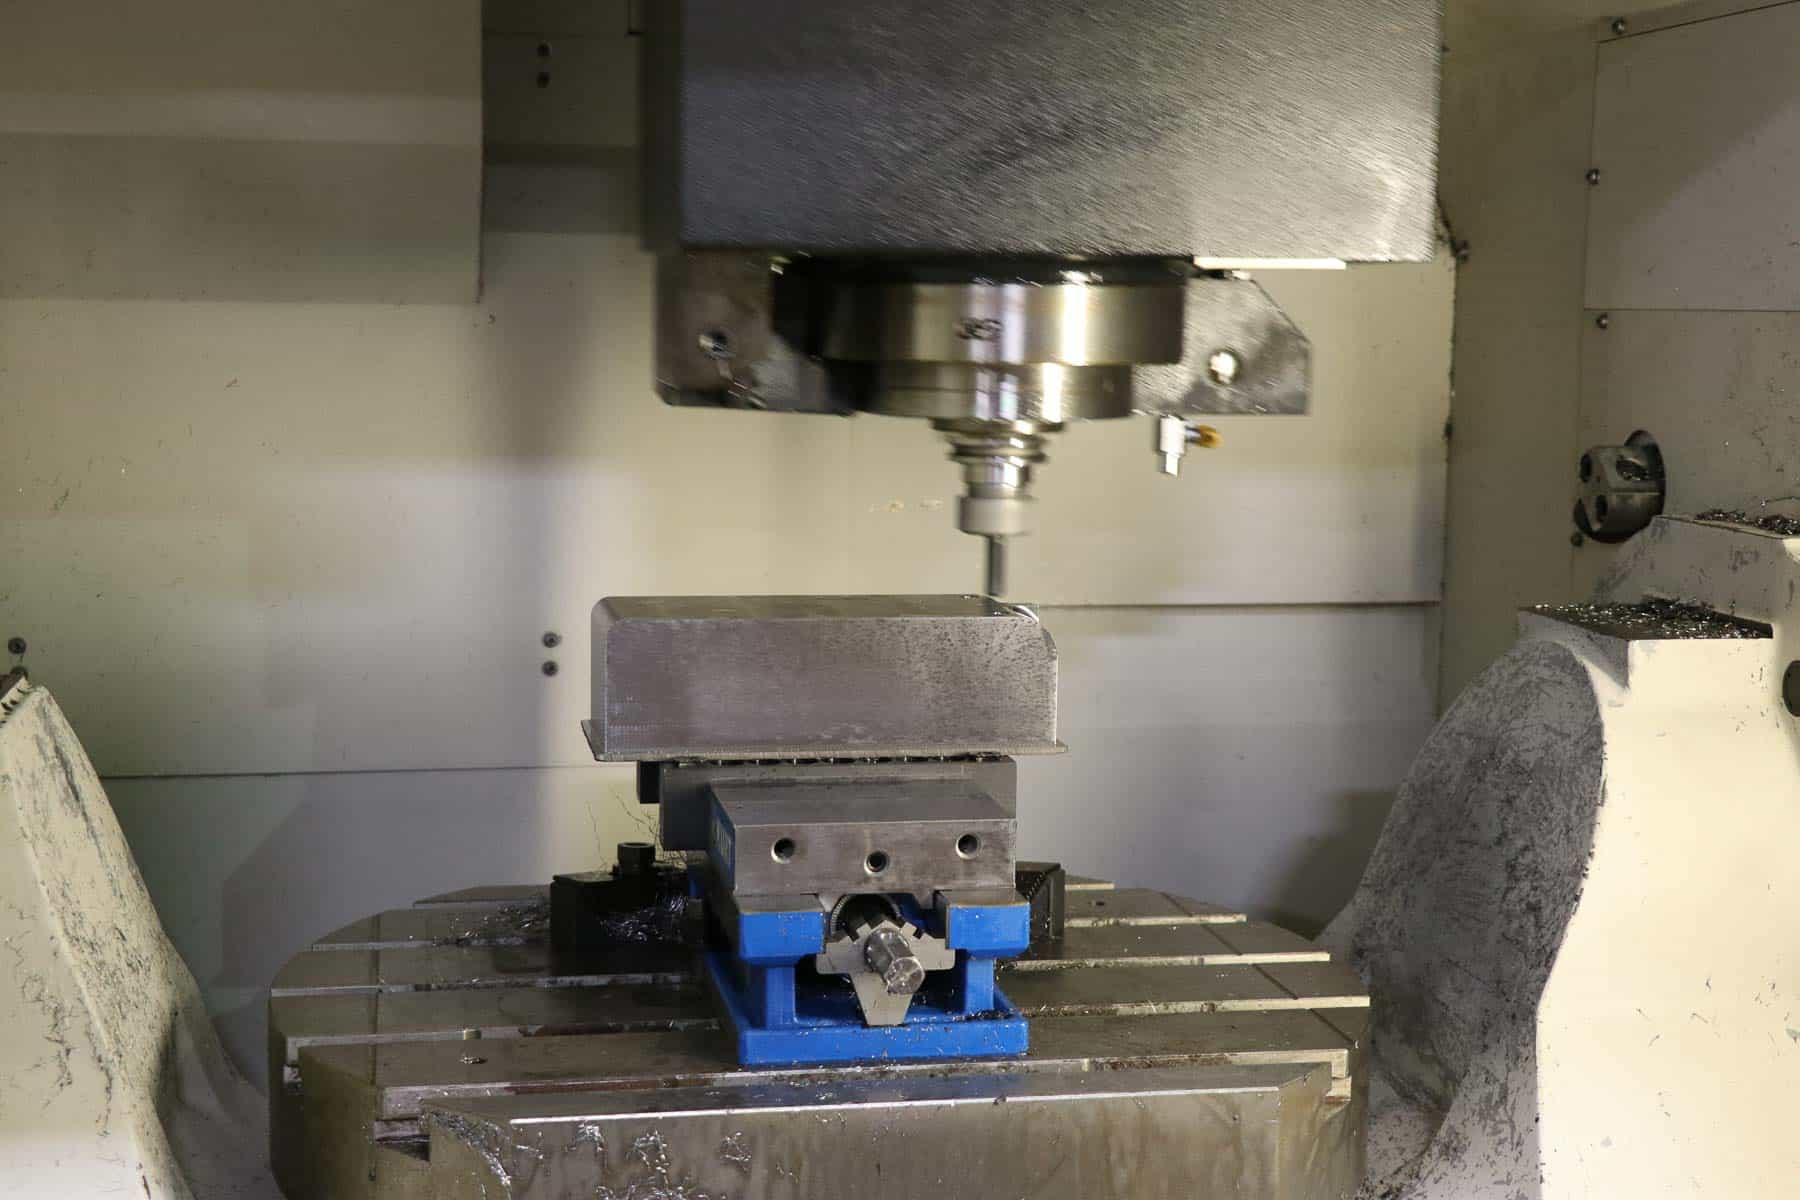 Metal machining helps fabrication projects come to life